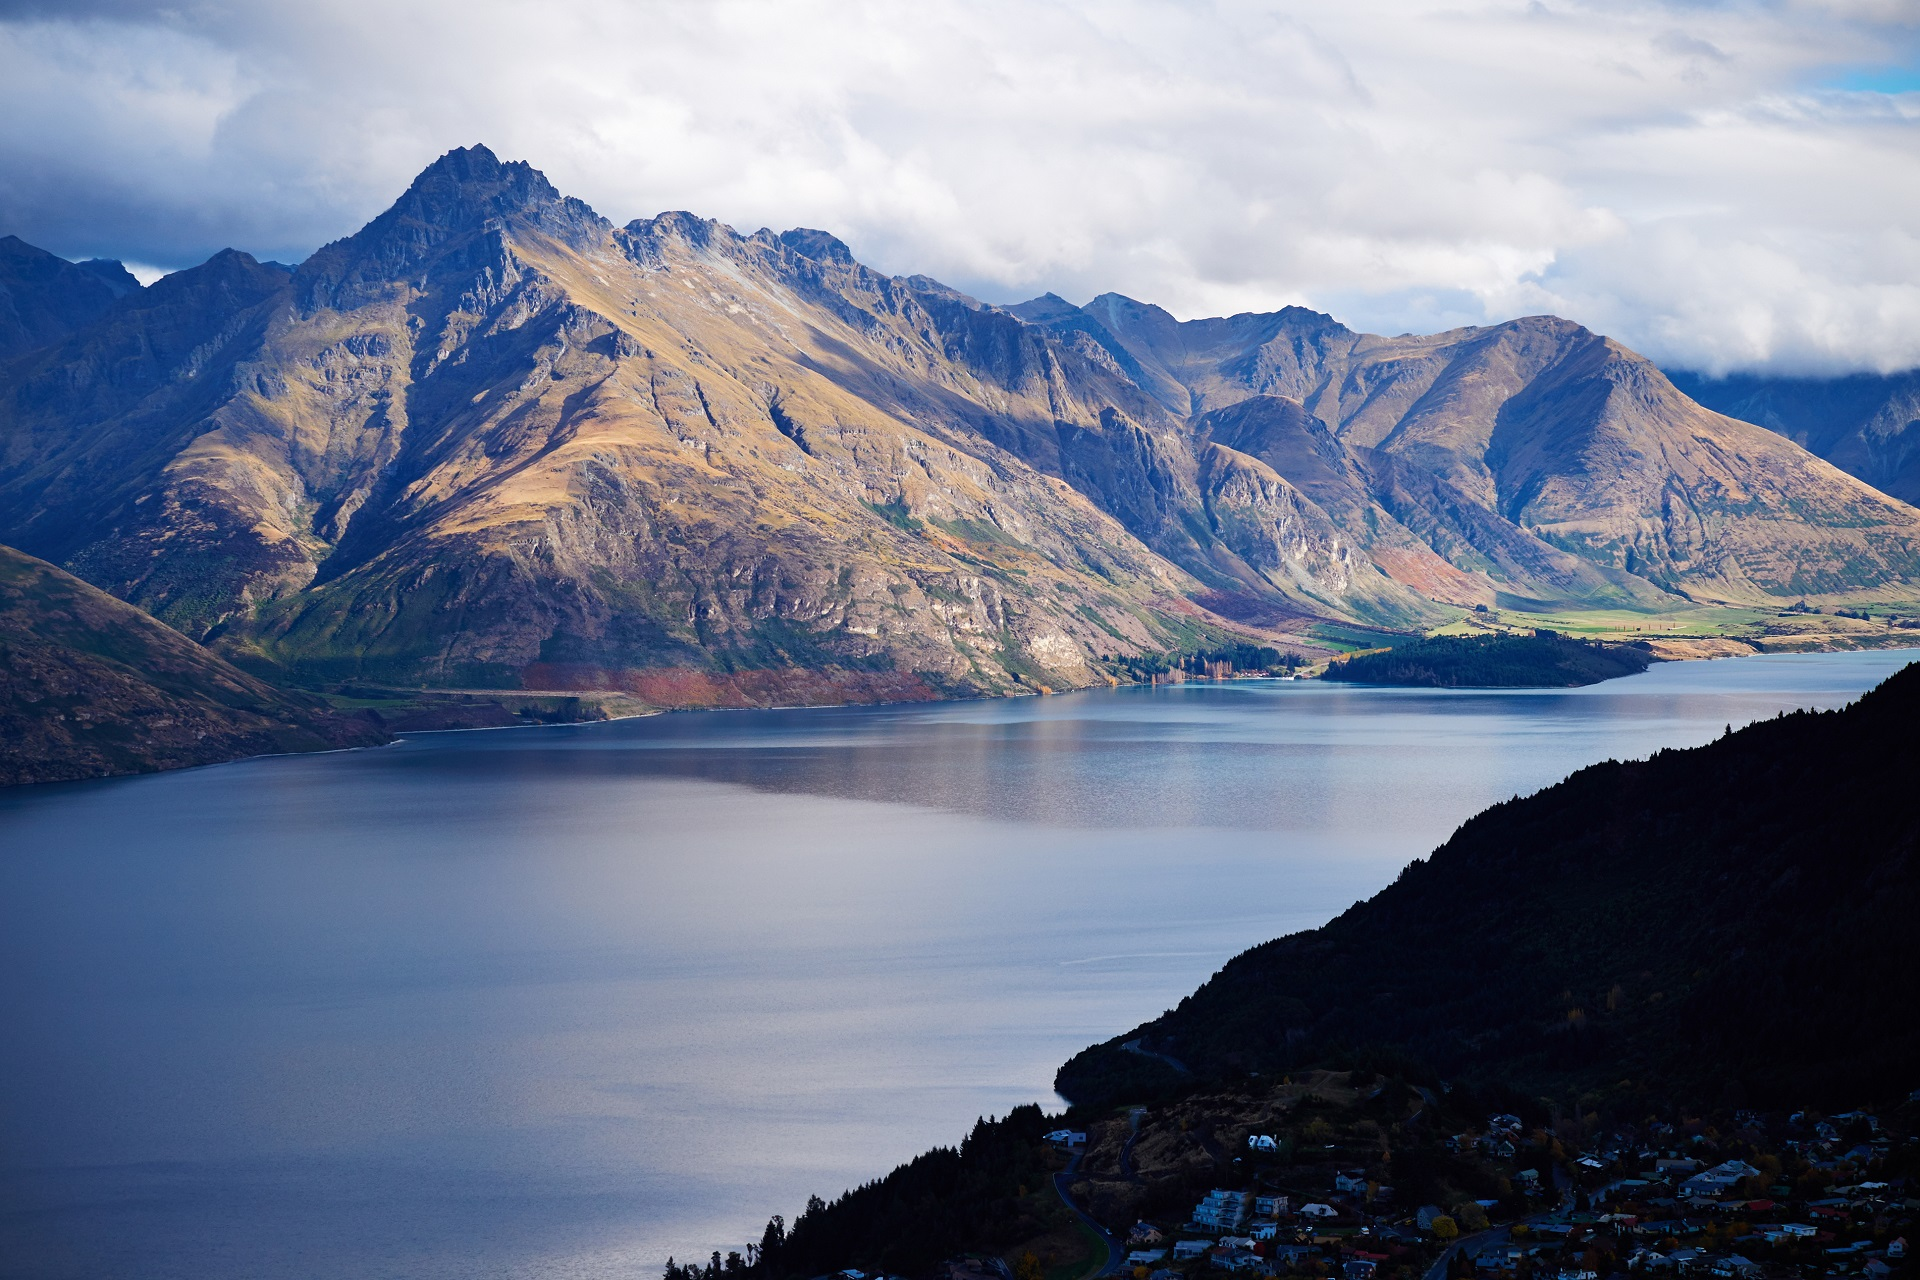 Cecil Peak am Lake Wakatipu in Queenstown, Neuseeland